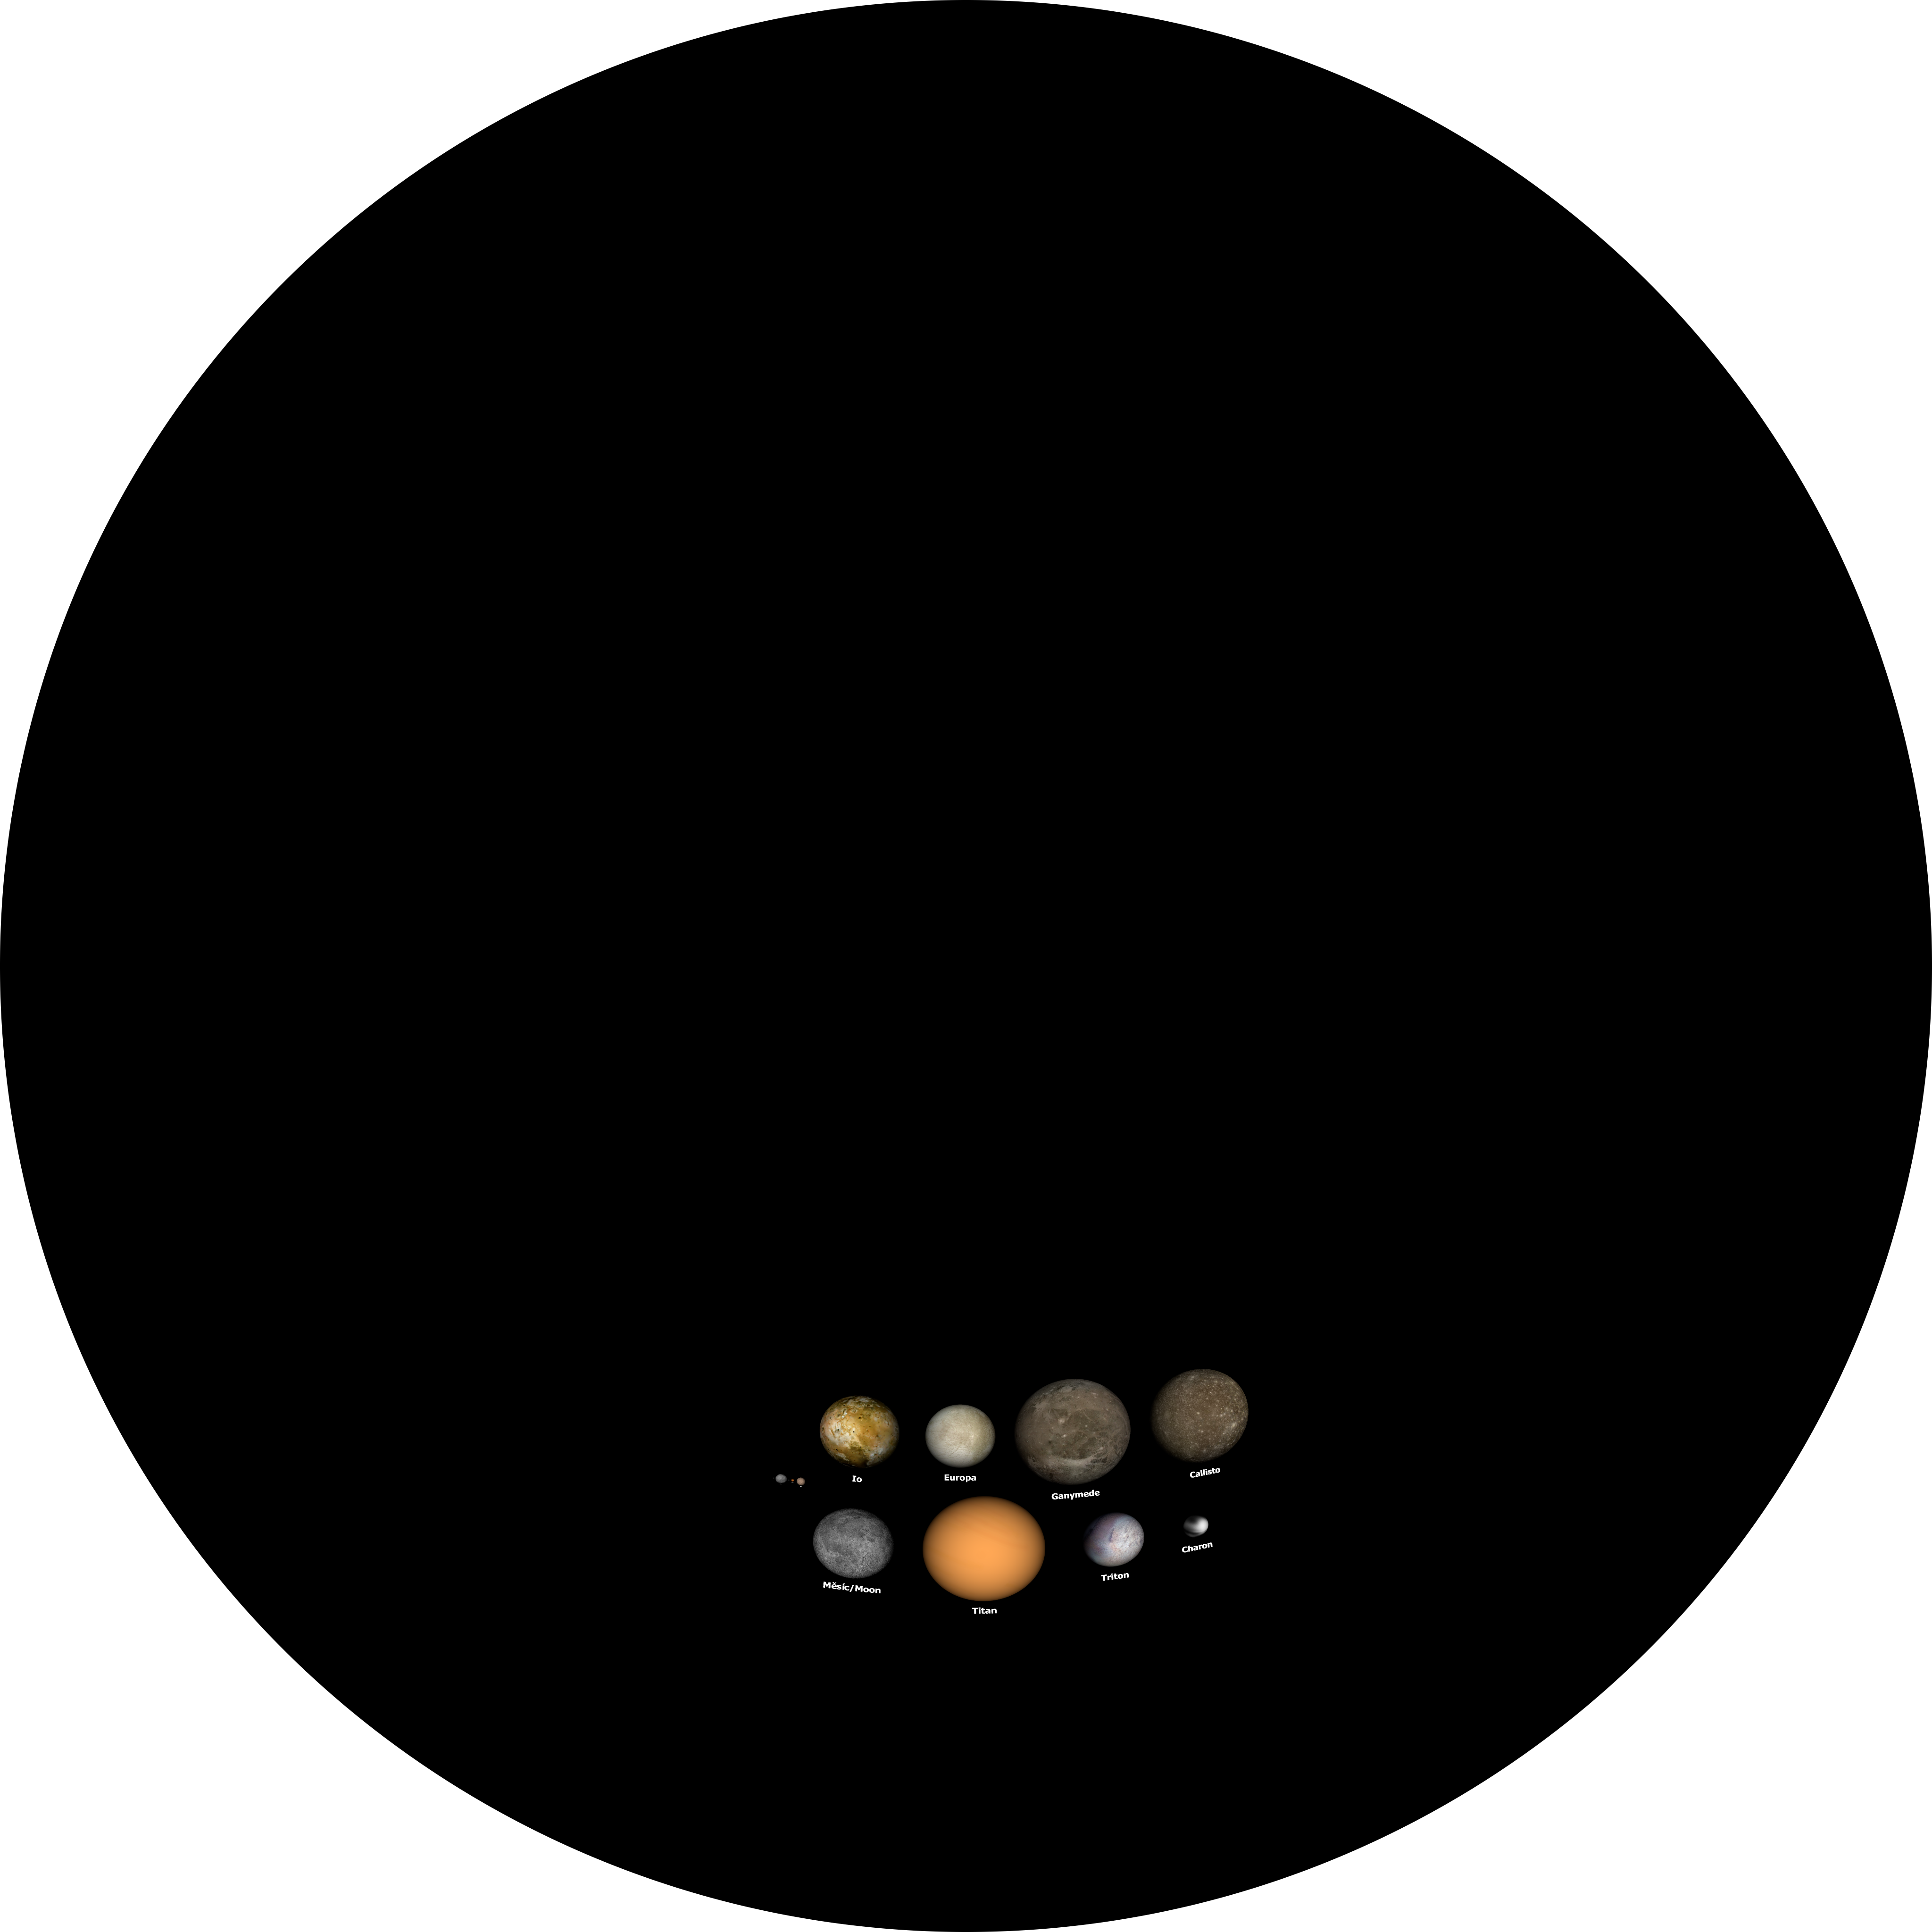 Planets clipart asteroid. Hphk the solar system